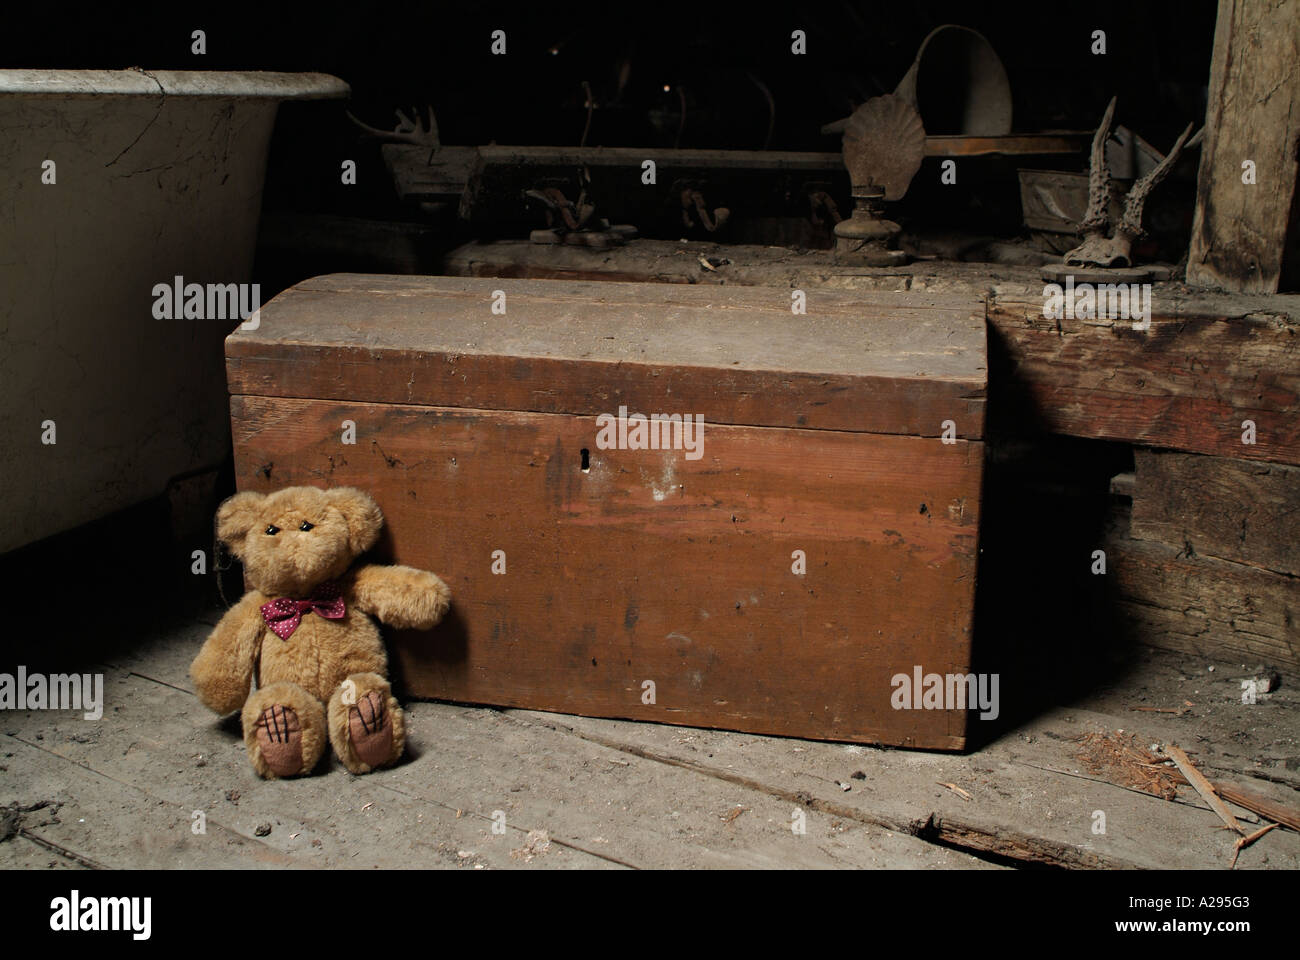 Teddy Bear and an Old Toy Box in the Dusty Attic Space of a House - Stock Image